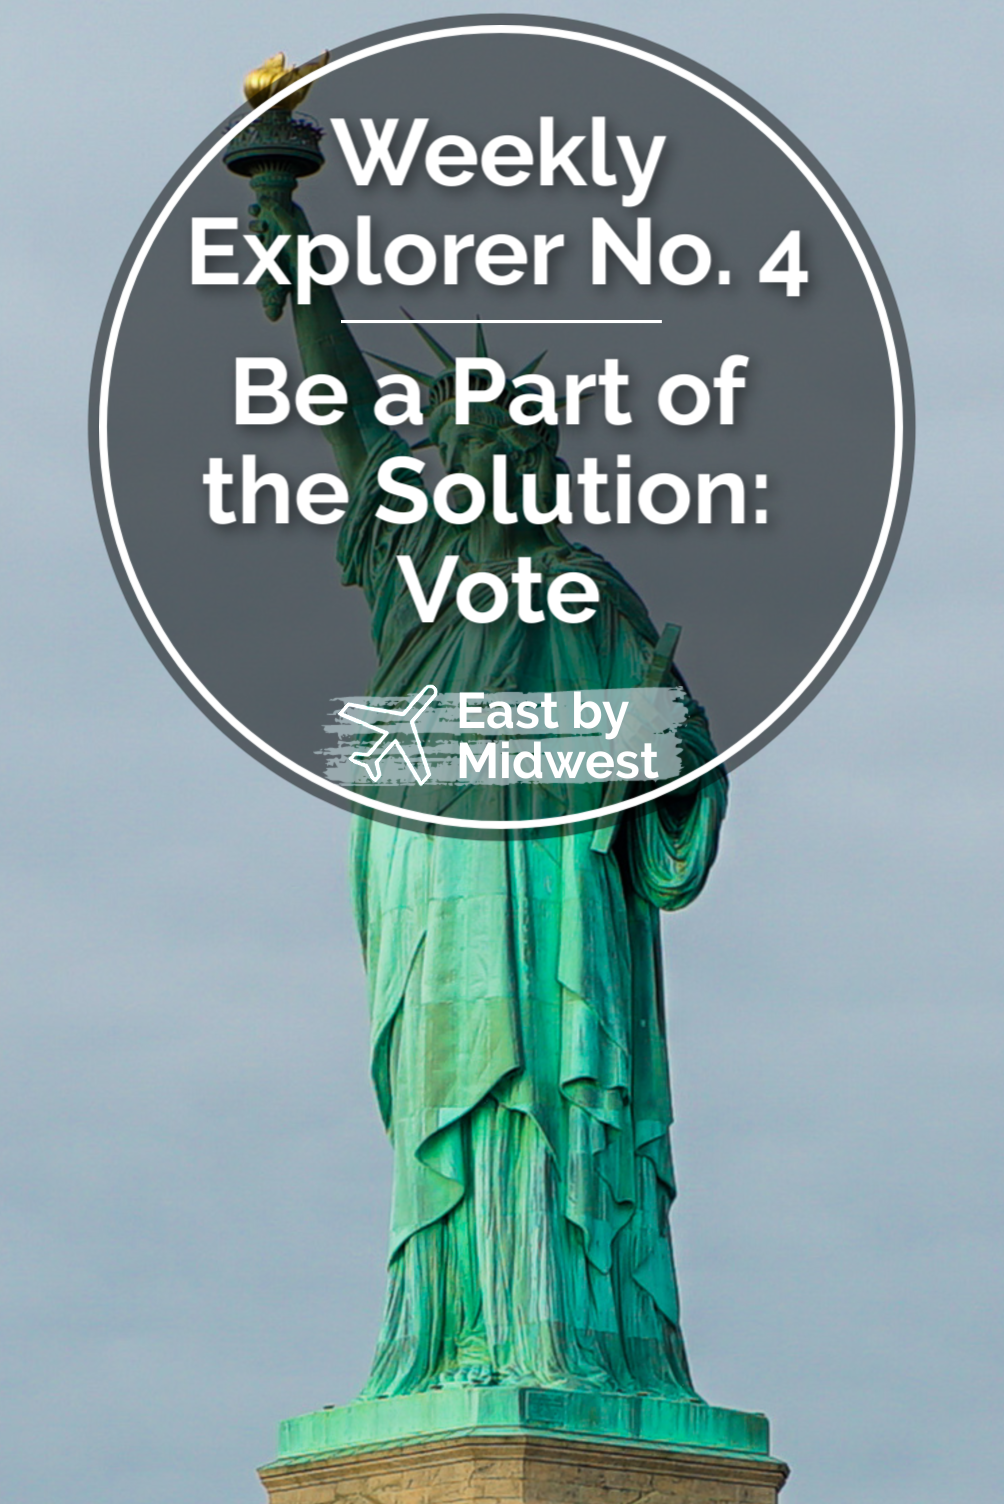 Weekly Explorer No. 4: Be a Part of the Solution – Vote